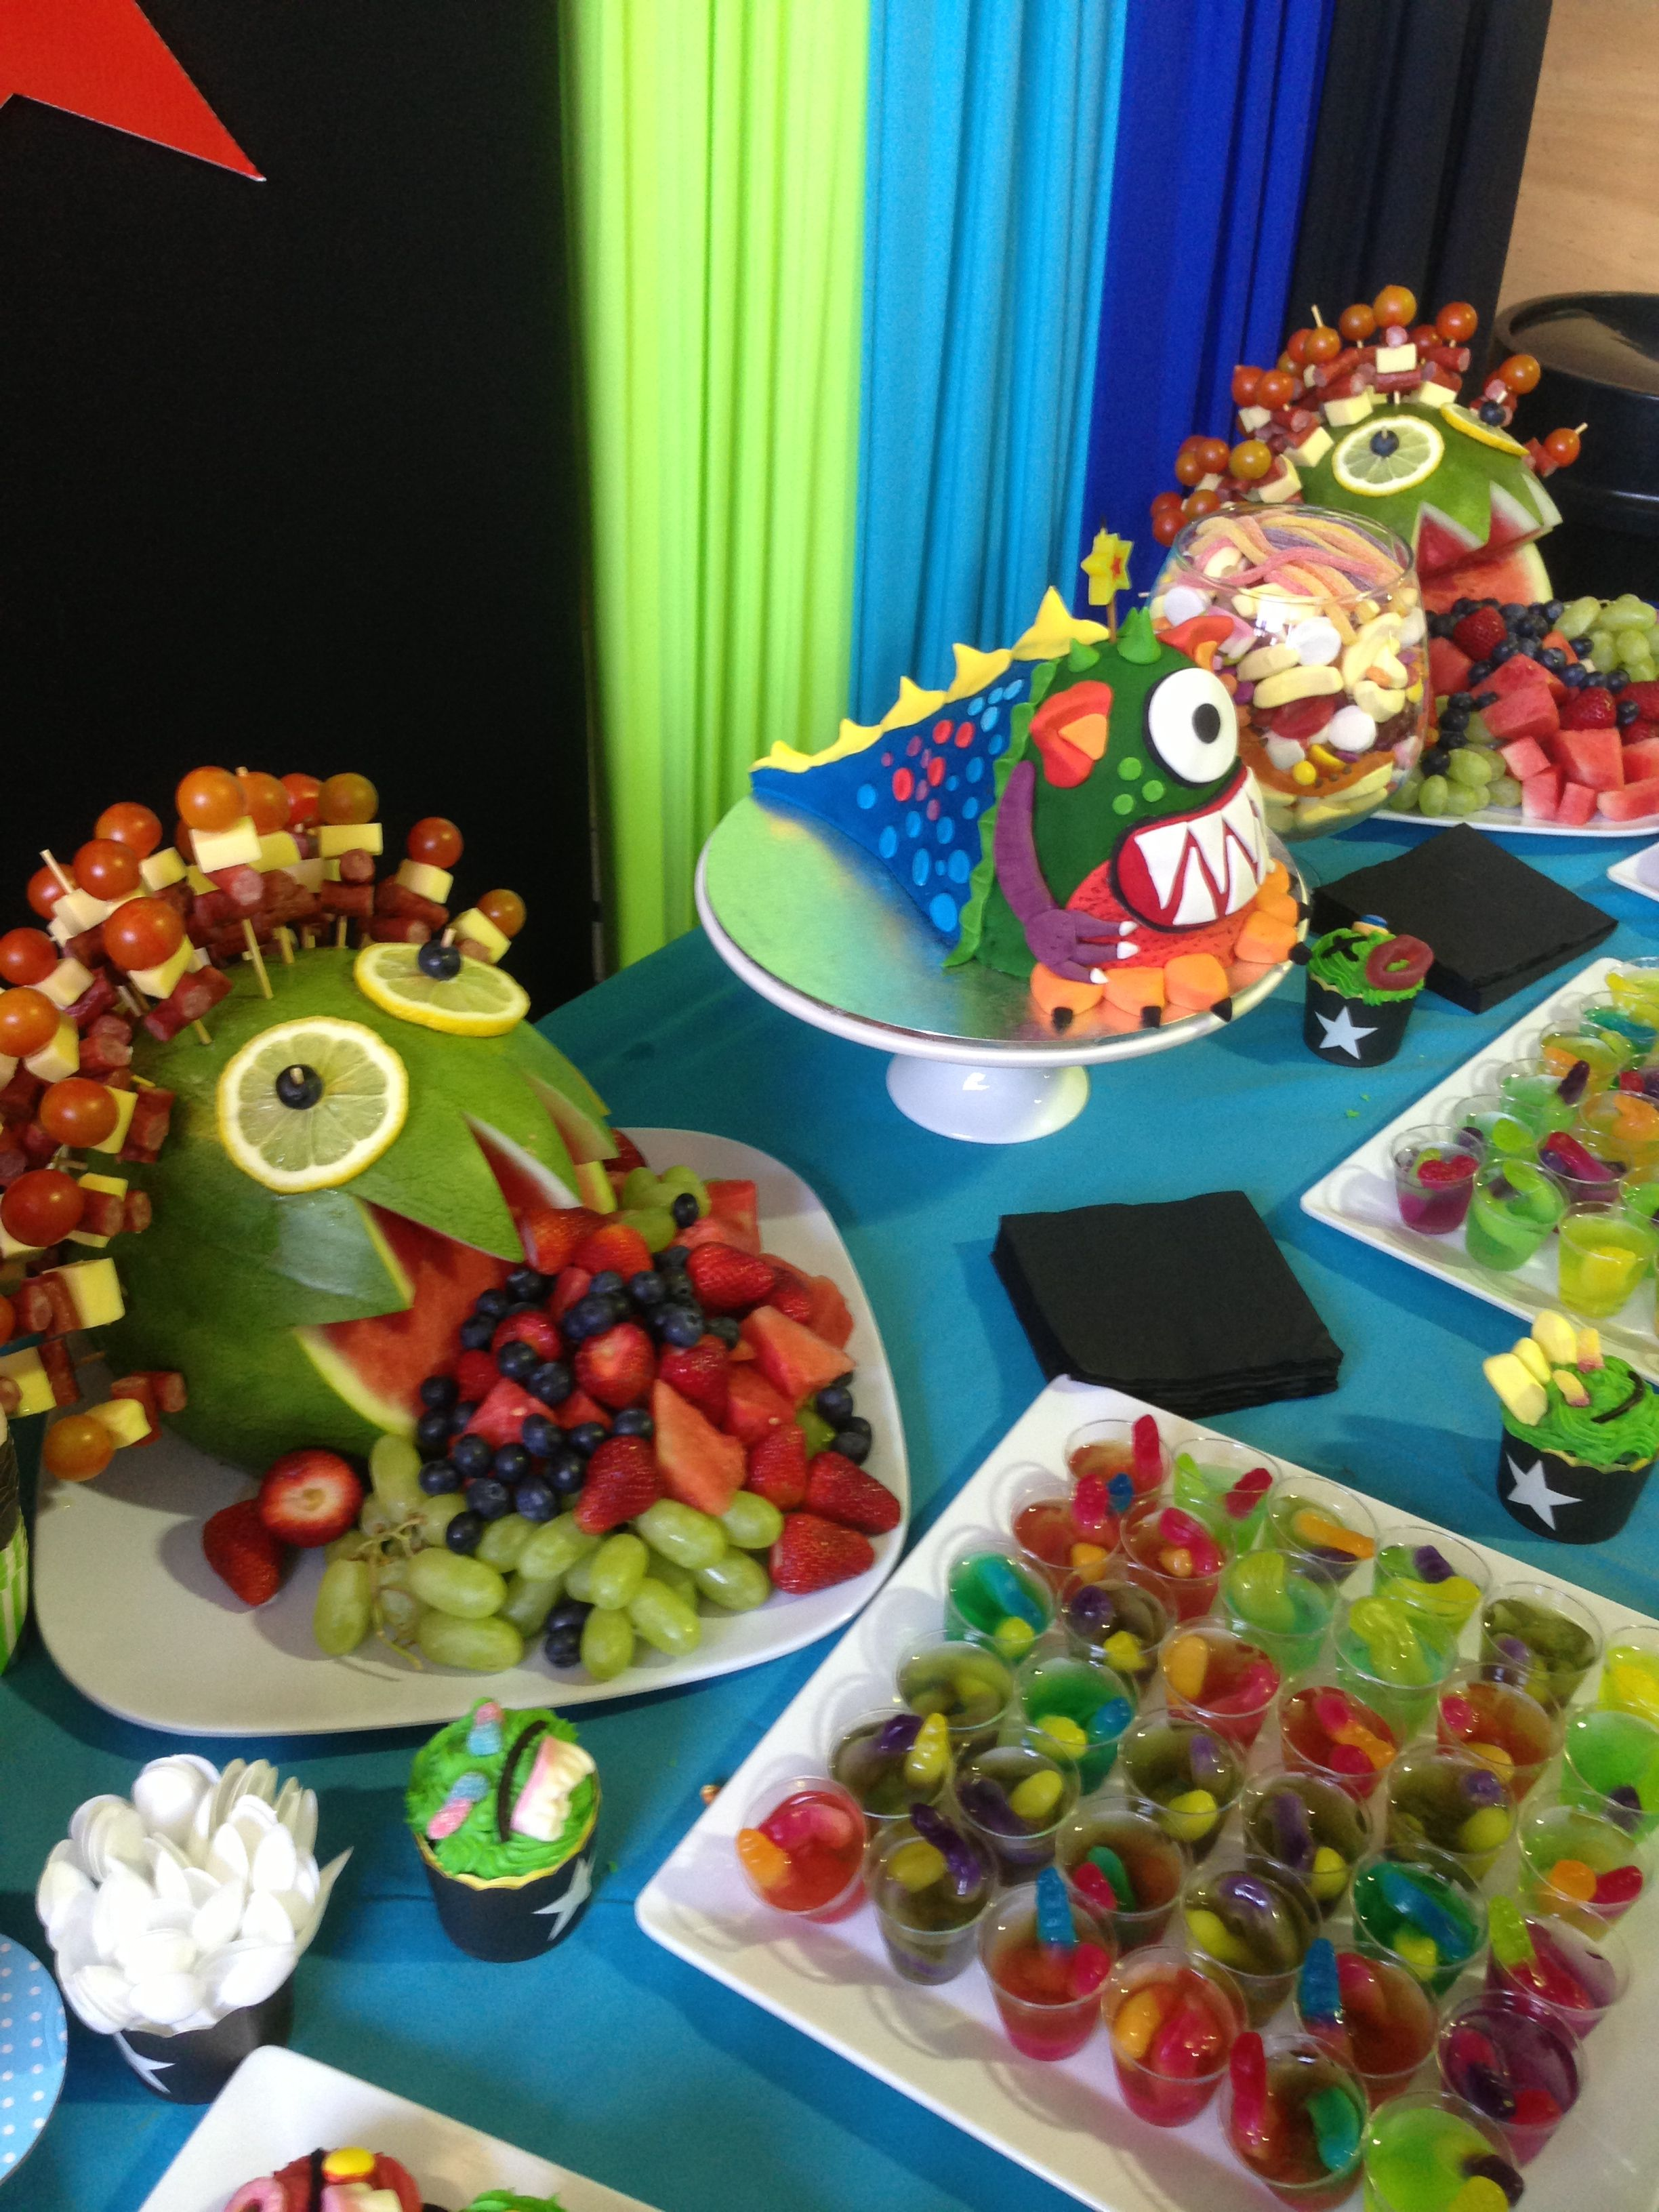 Monster Party Food Also Check Out My Site Www Partiesandfun Etsy Com For More Ideas Halloween Food For Party Monster Party Food Monster Birthday Parties